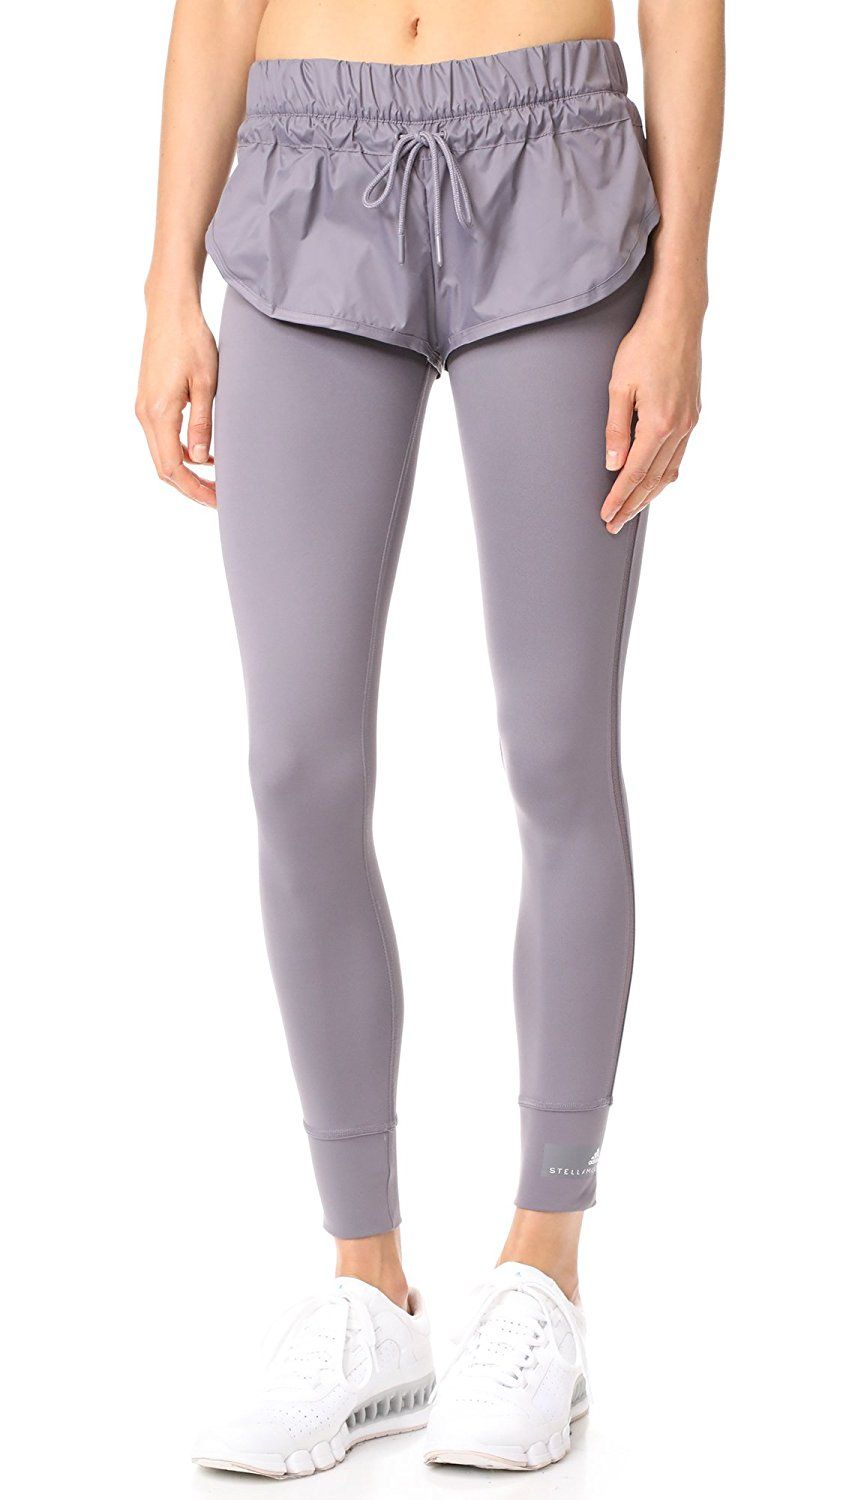 080fd1cdae5f adidas by Stella McCartney Women s Short Tights Shorts With Tights